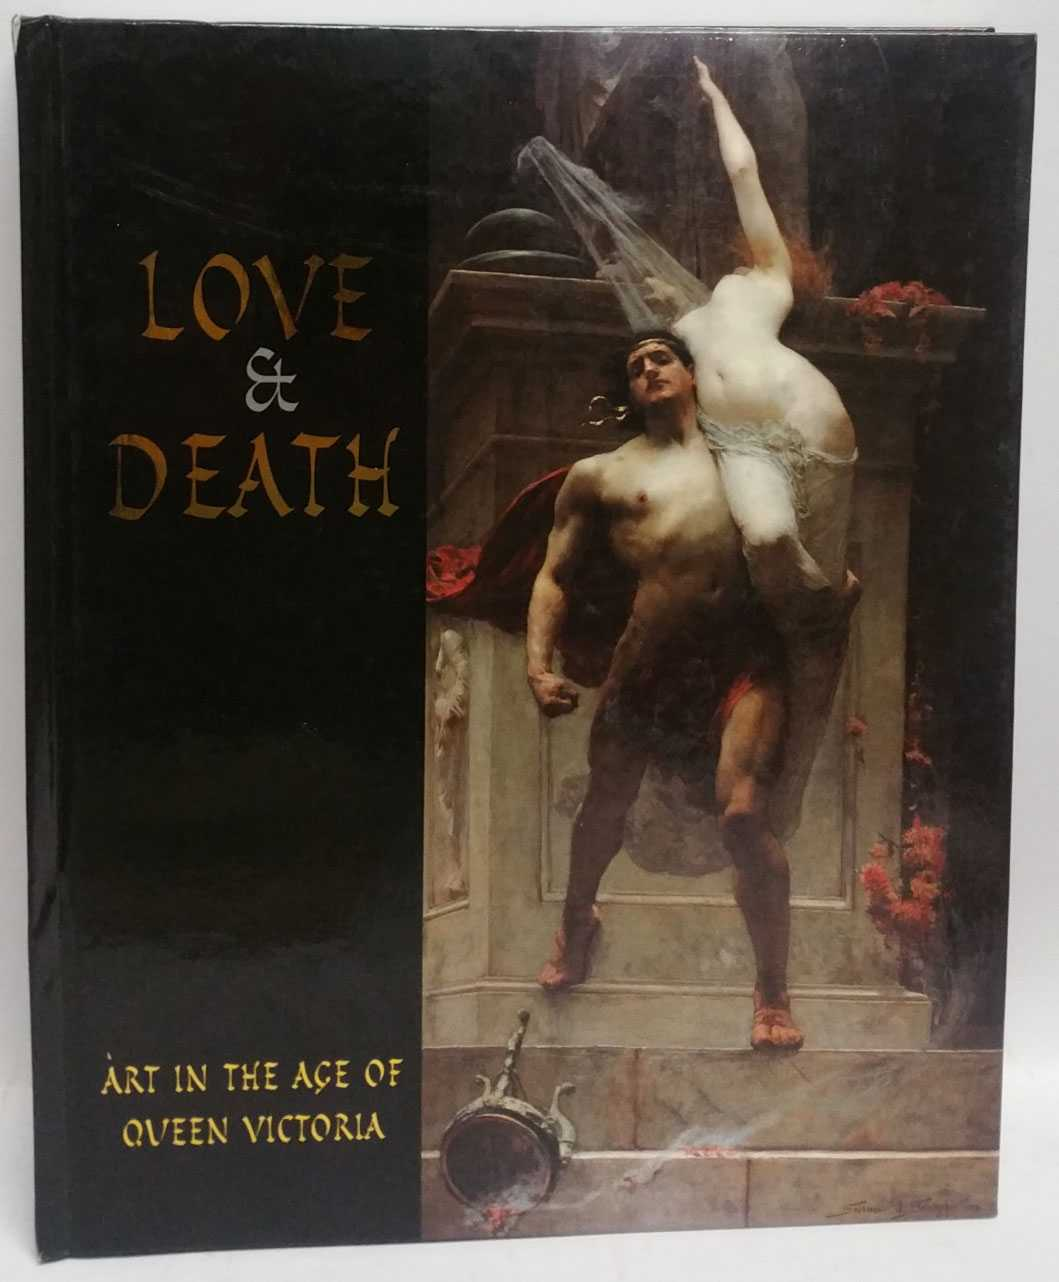 Love & Death: Art In The Age of Queen Victoria, Angus Trumble